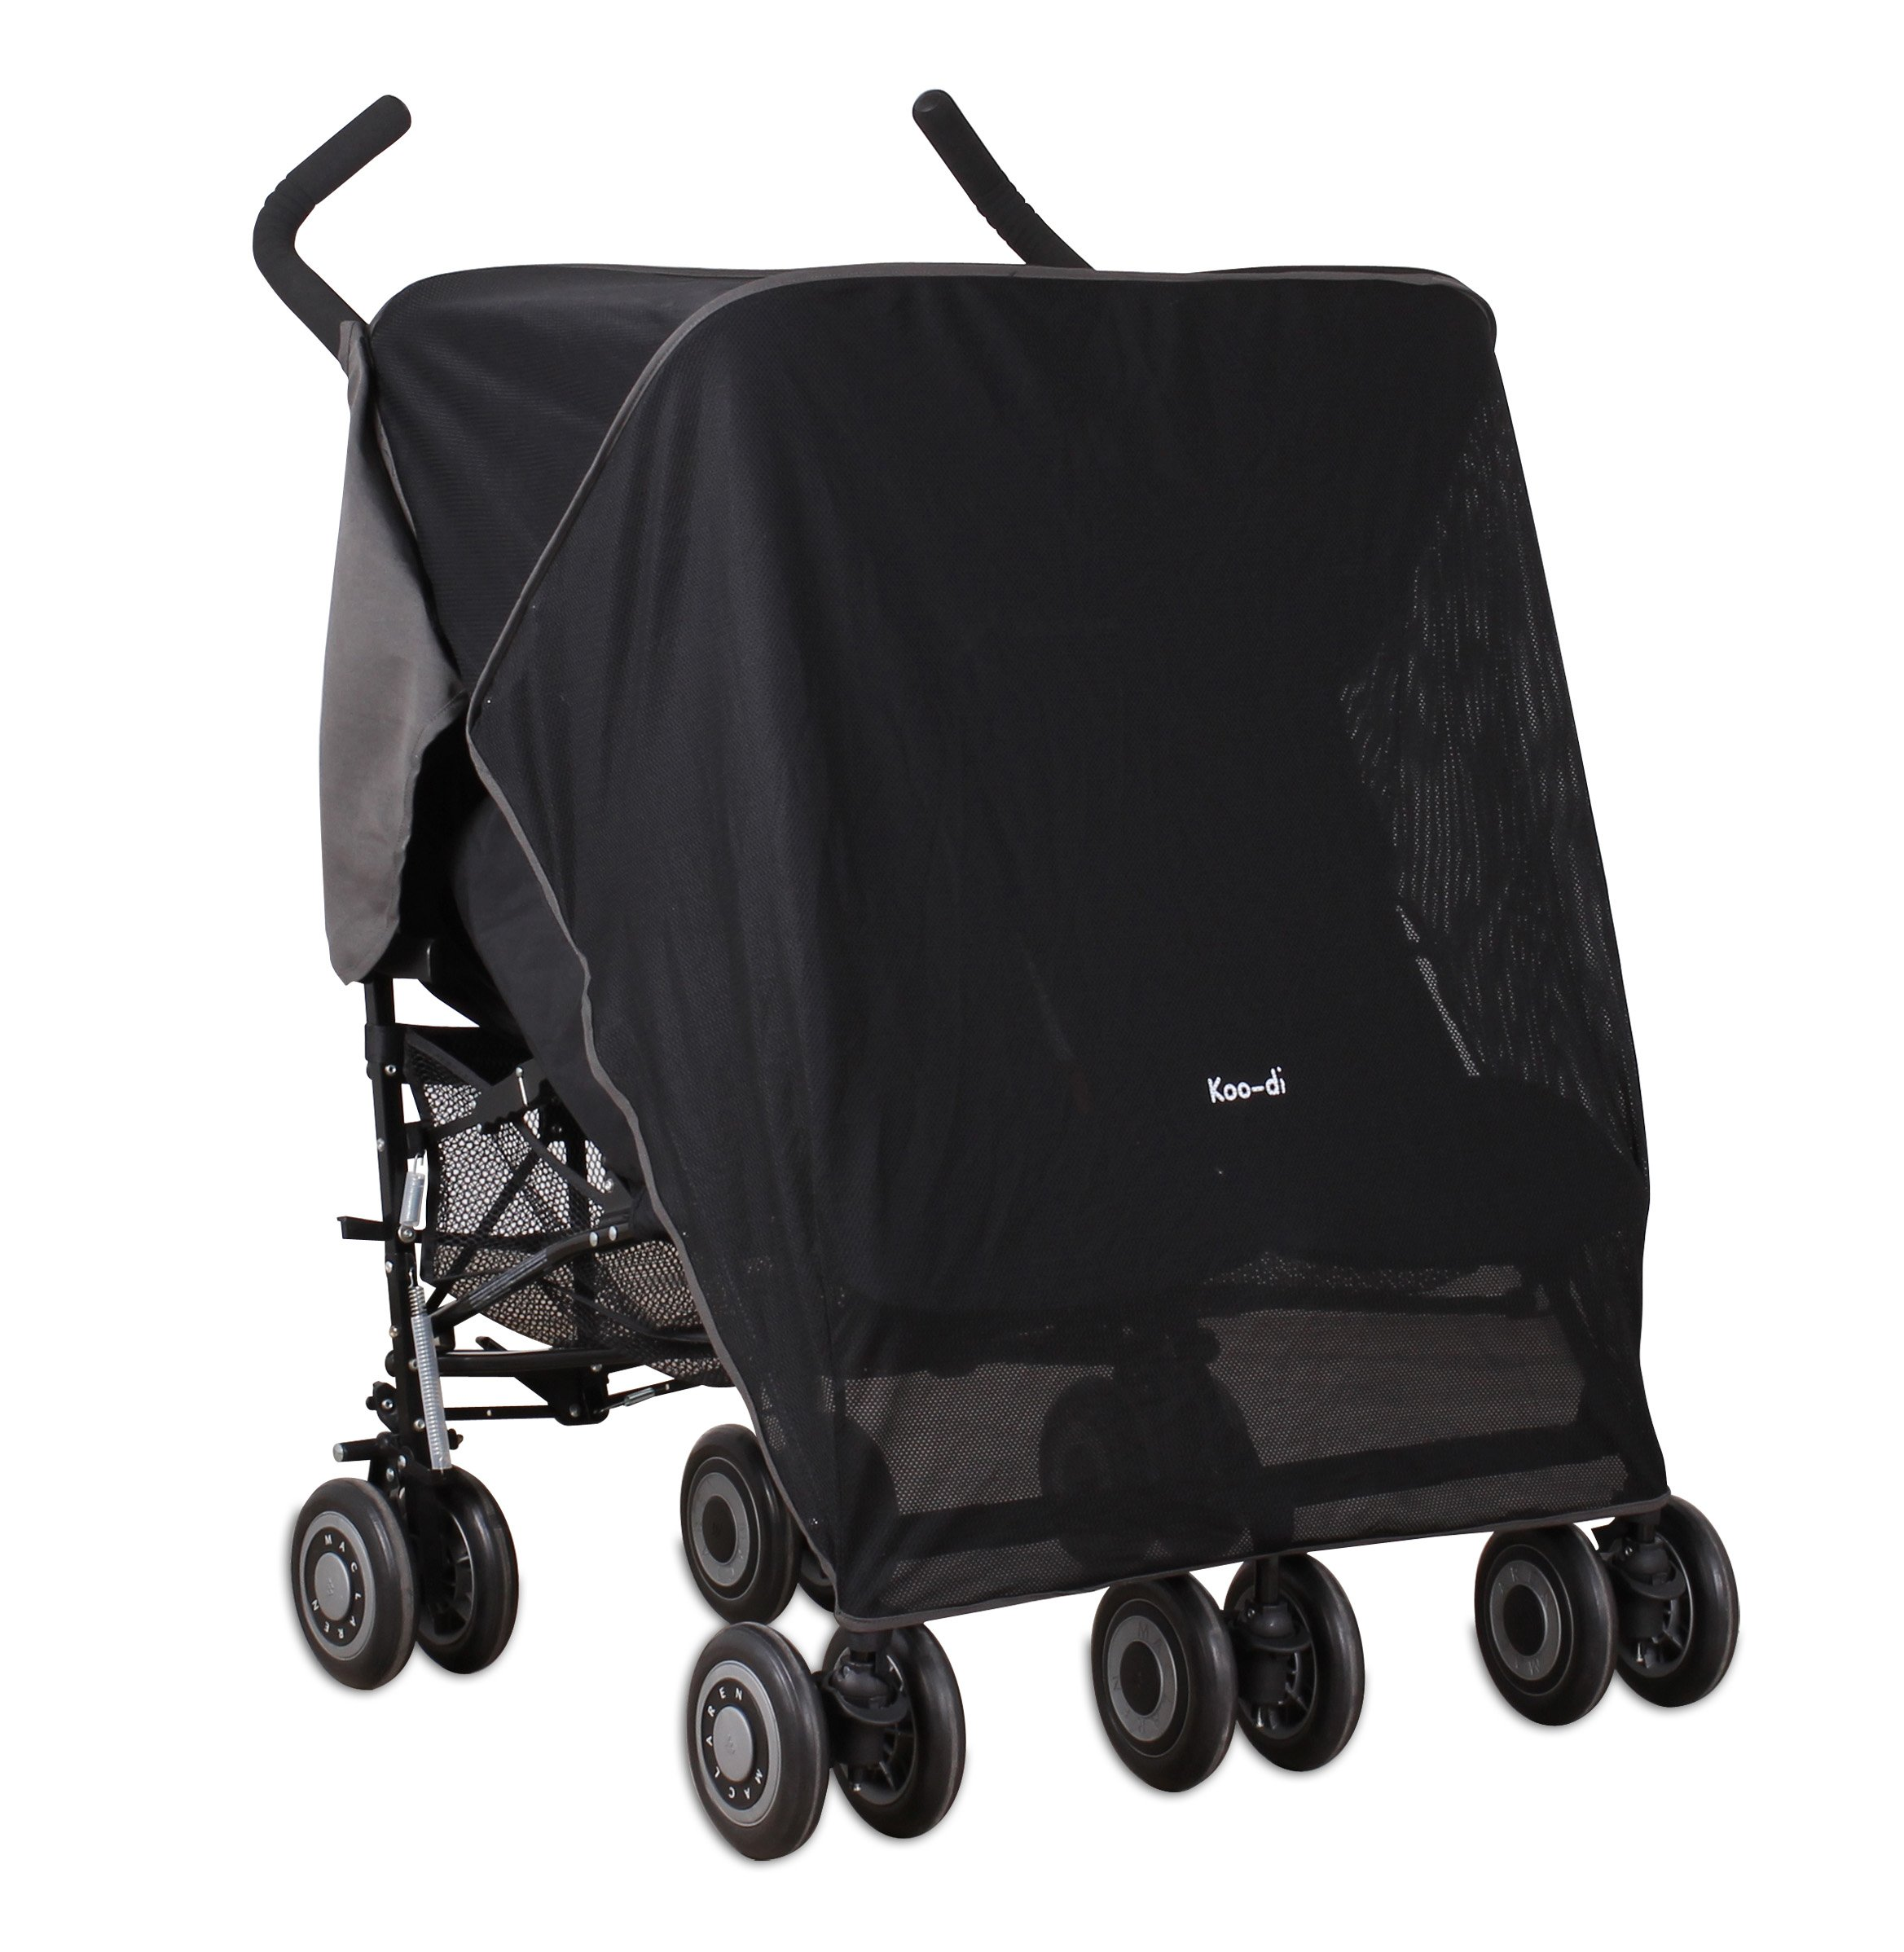 Koo-DI Double Sun and Sleep Stroller Cover (Black) by BabyCenter